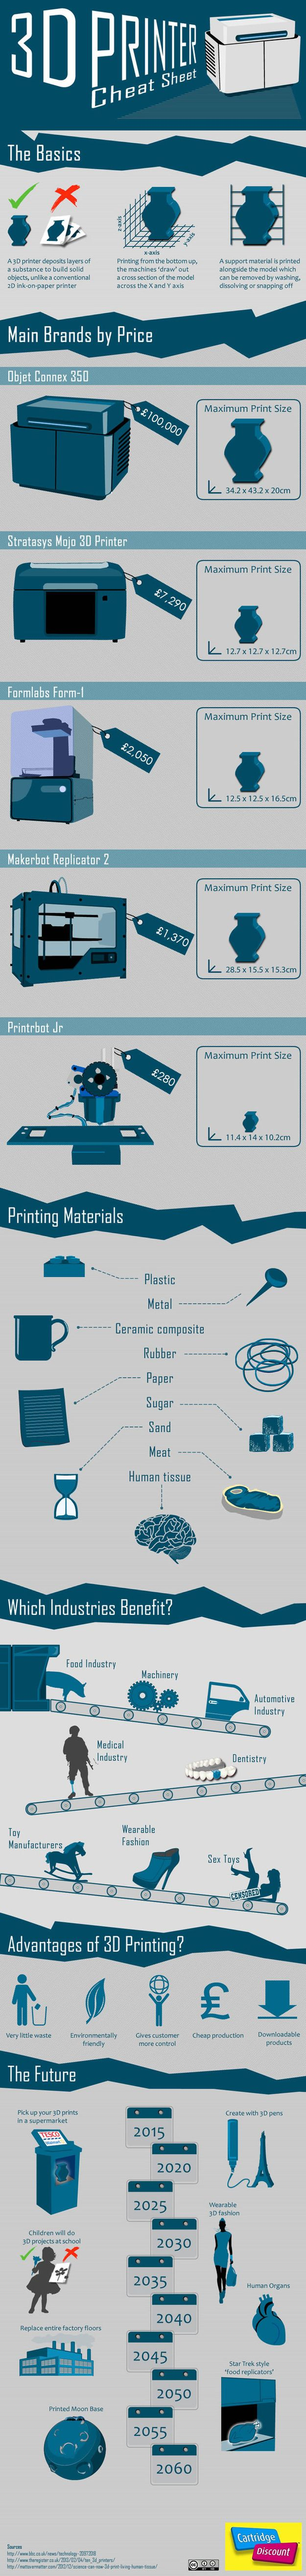 3d-printer-cheat-sheet-infographic-plaza